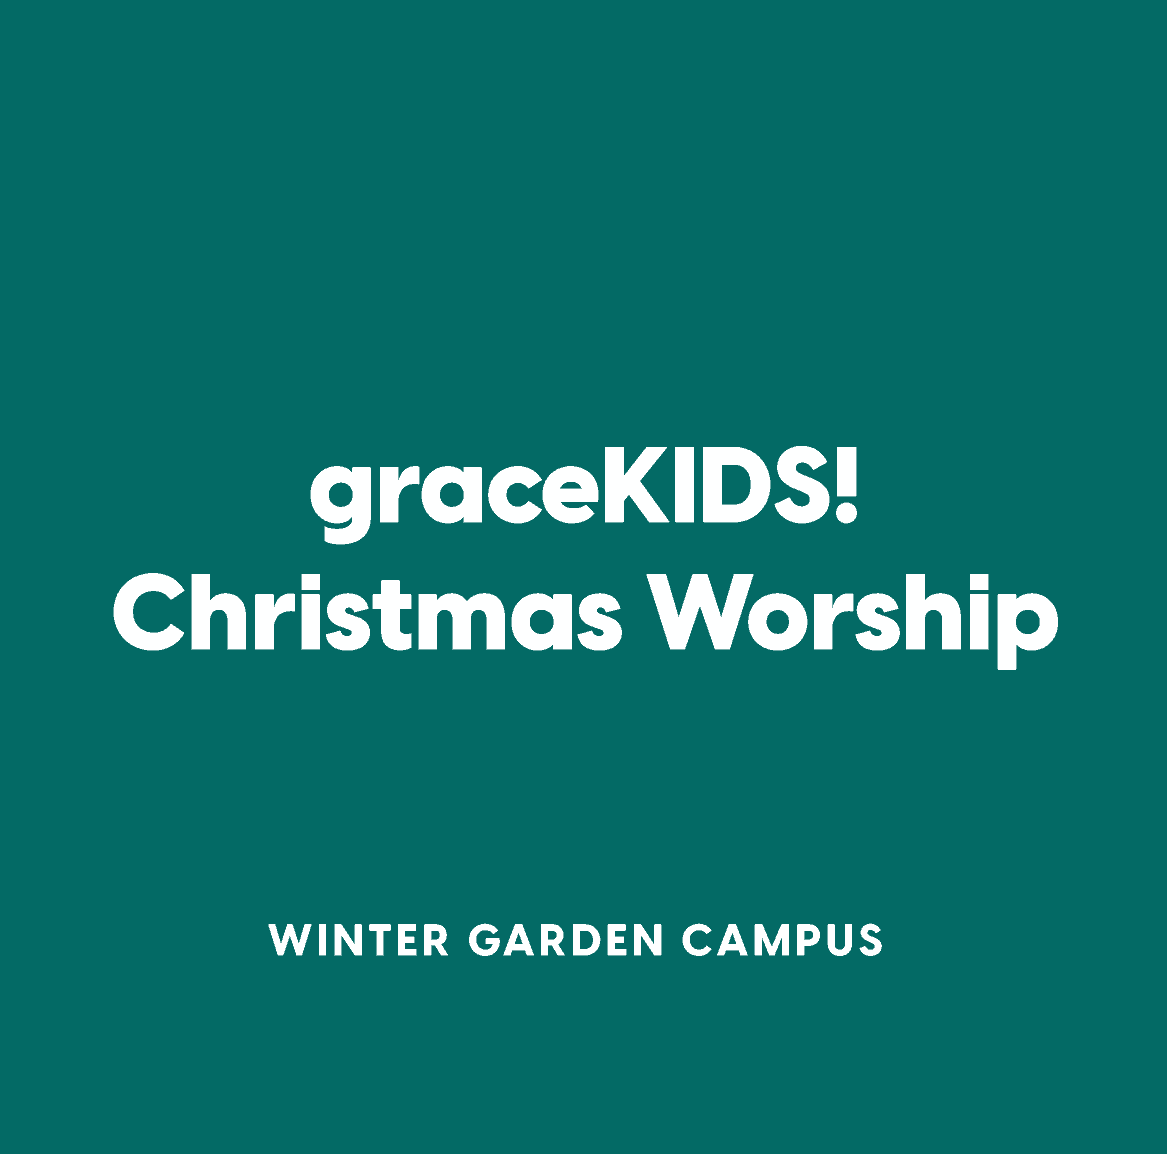 Winter Garden graceKIDS! Christmas Worship